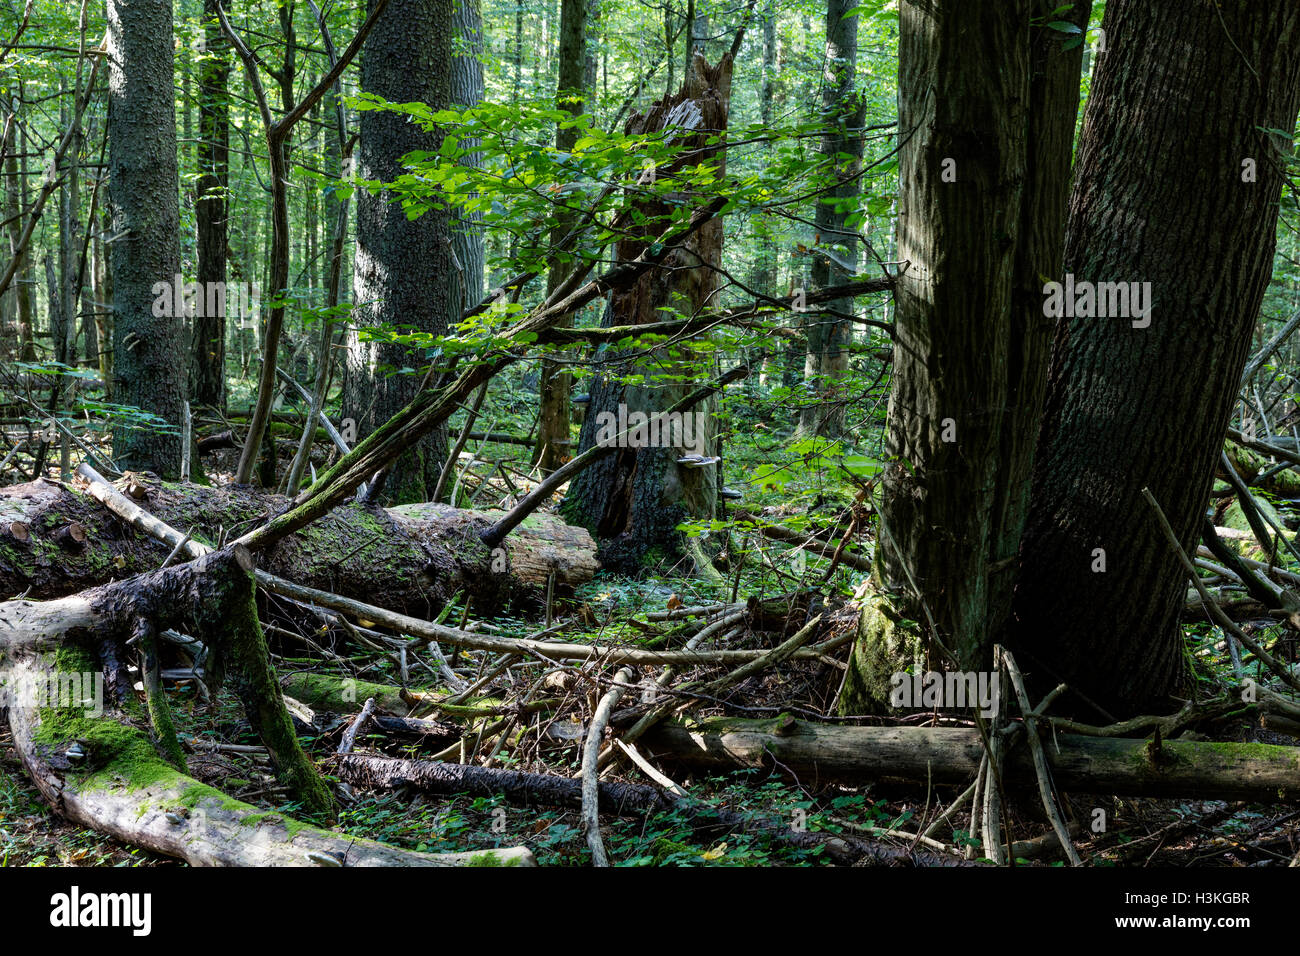 Bialowieza Forest in summer time, Poland, Europe. - Stock Image